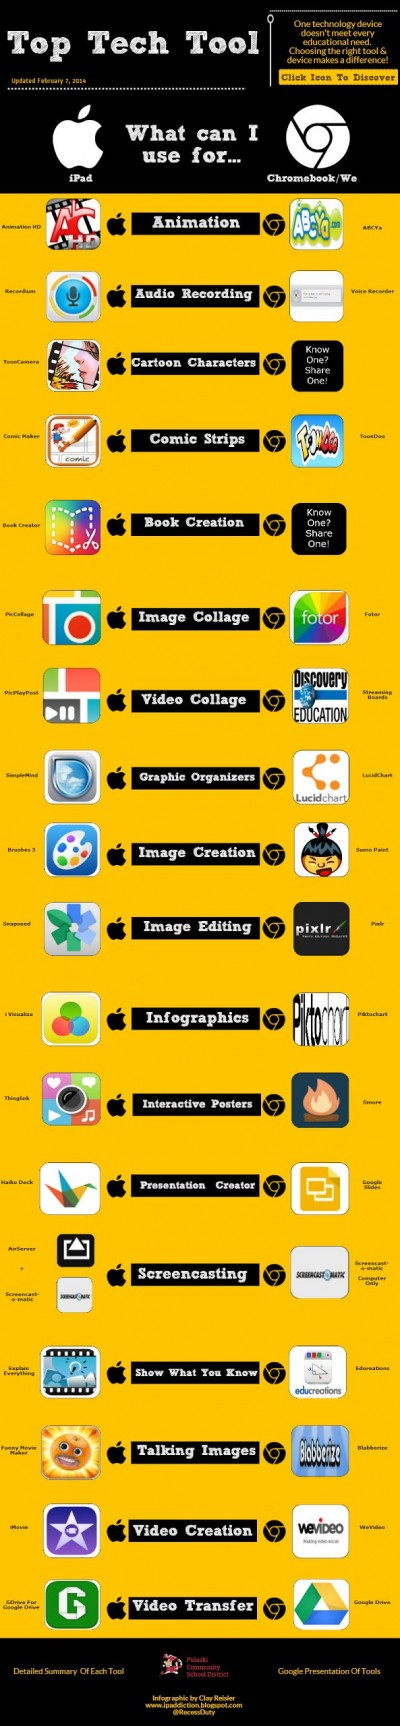 top tech tools infographic